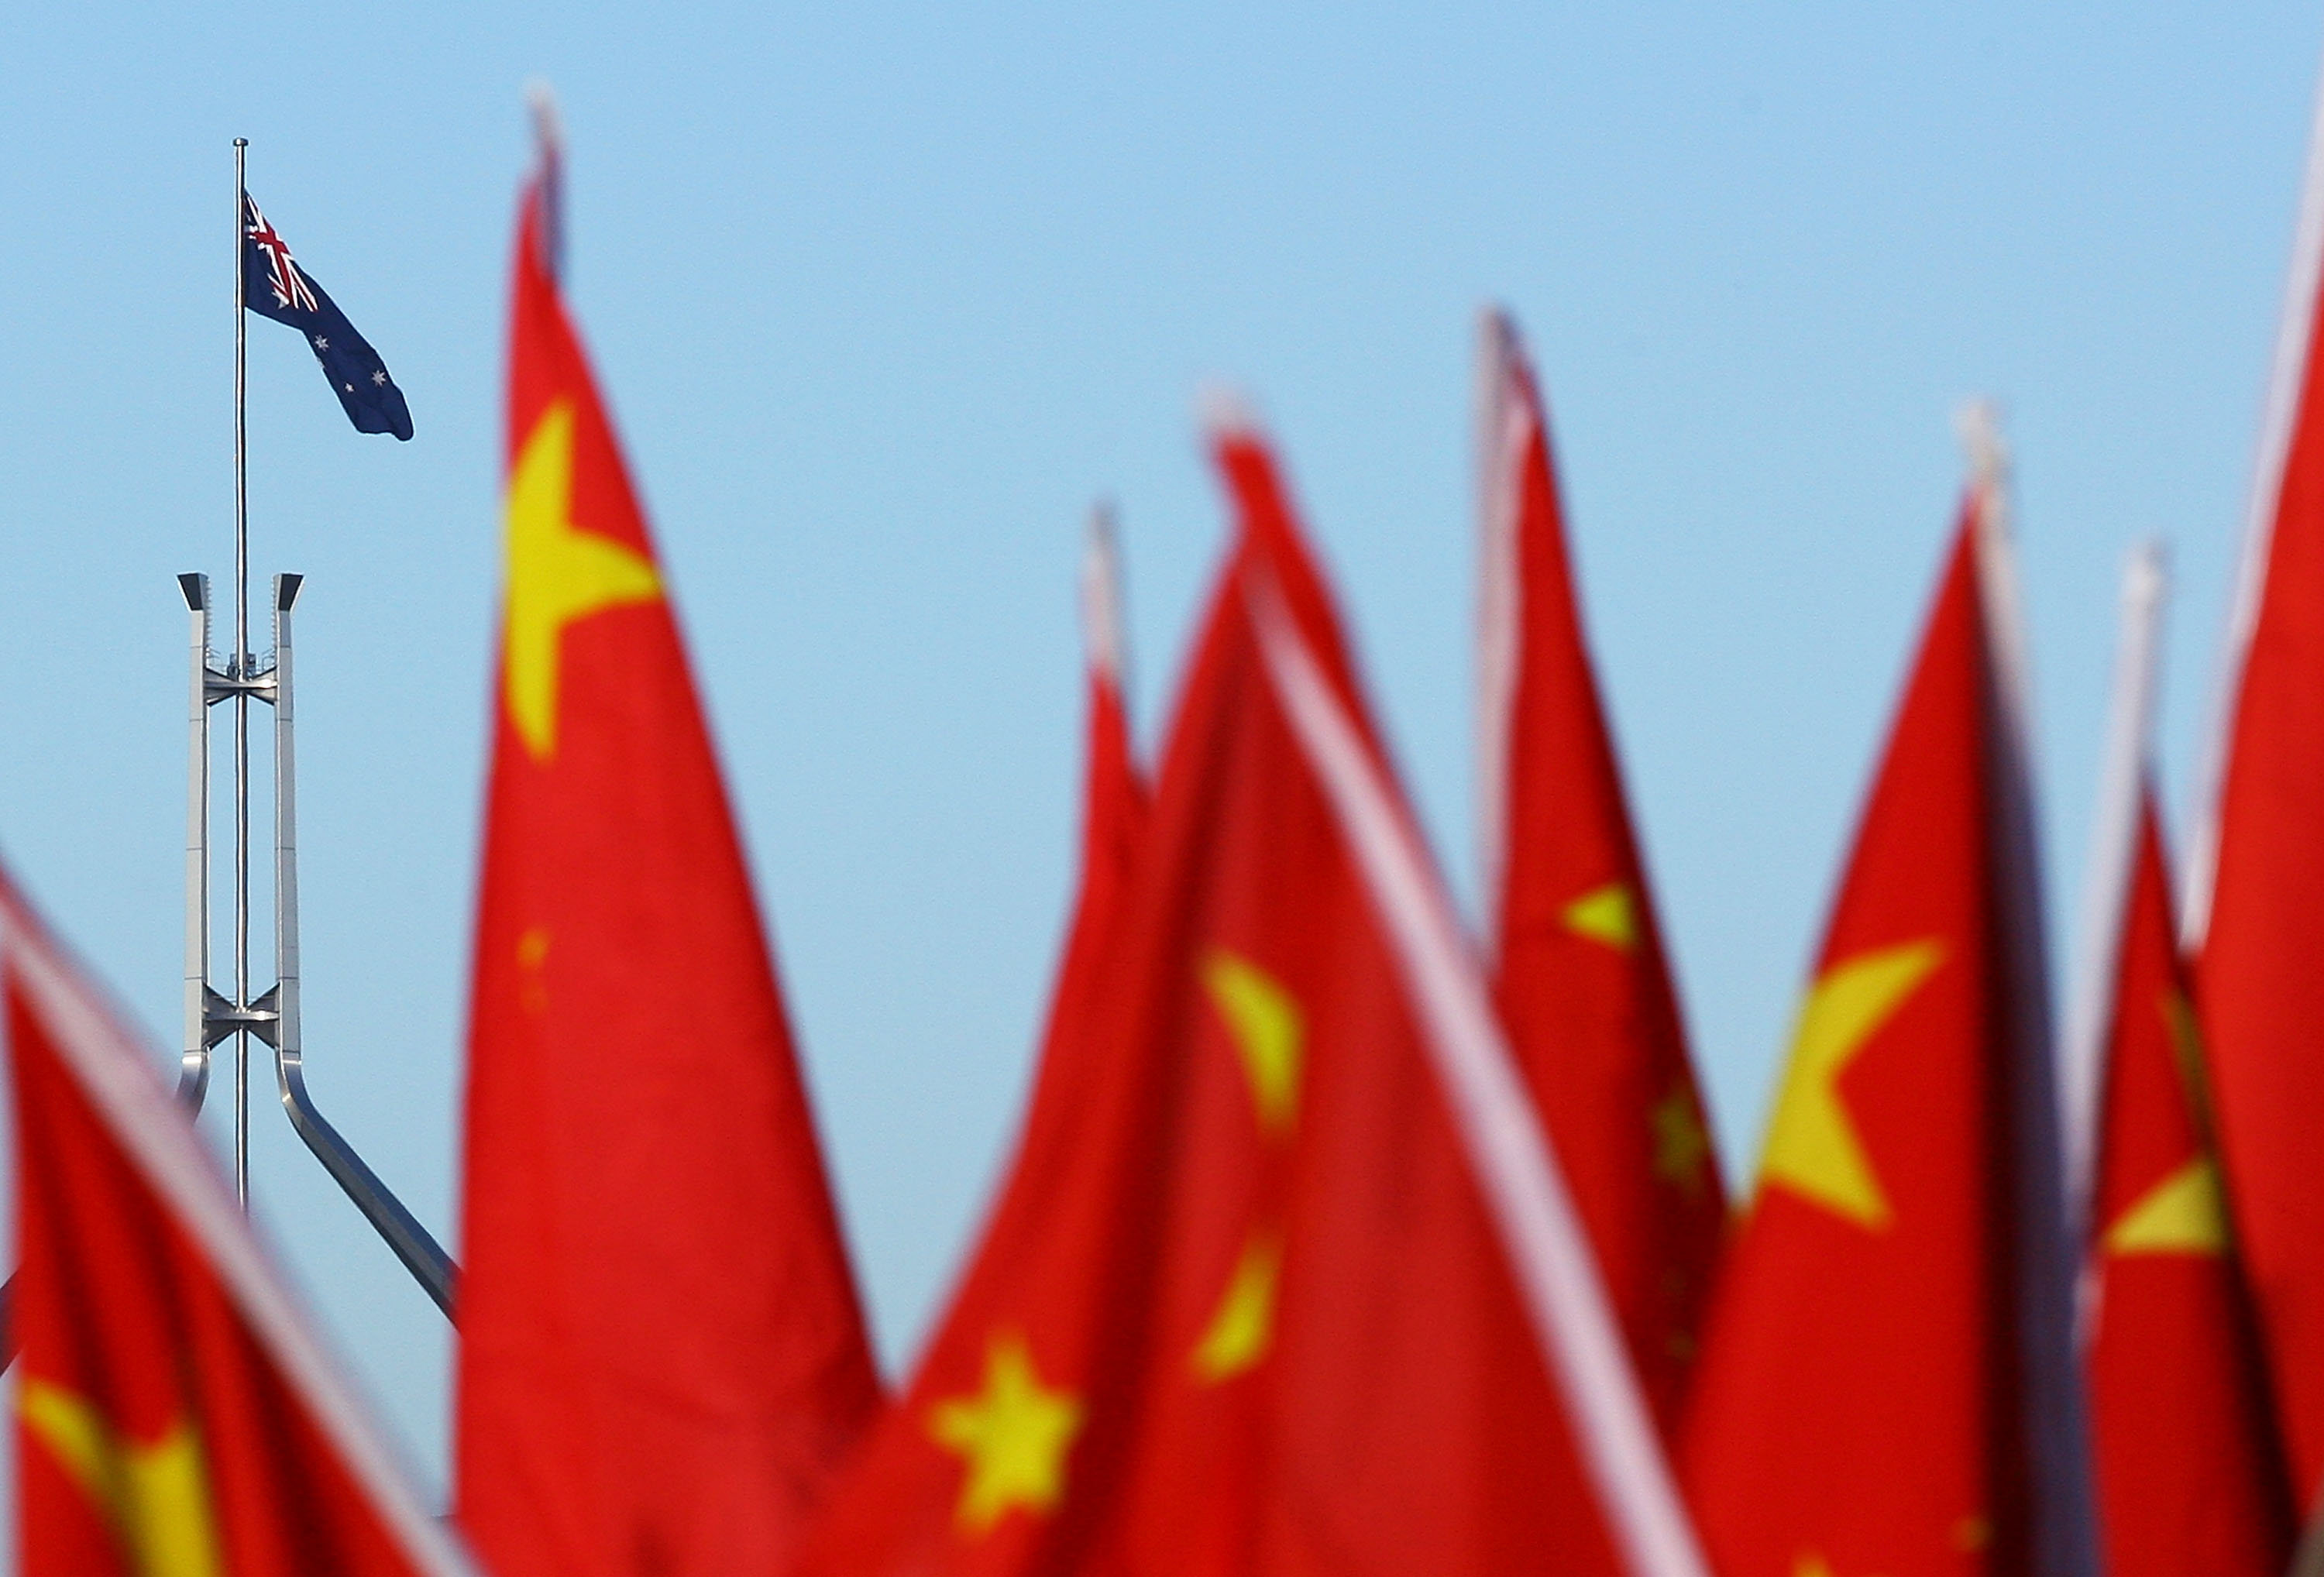 Chinese supporters hold flags at the start of the Olympic Torch relay at Reconciliation Place on April 24, 2008 in Canberra, Australia.